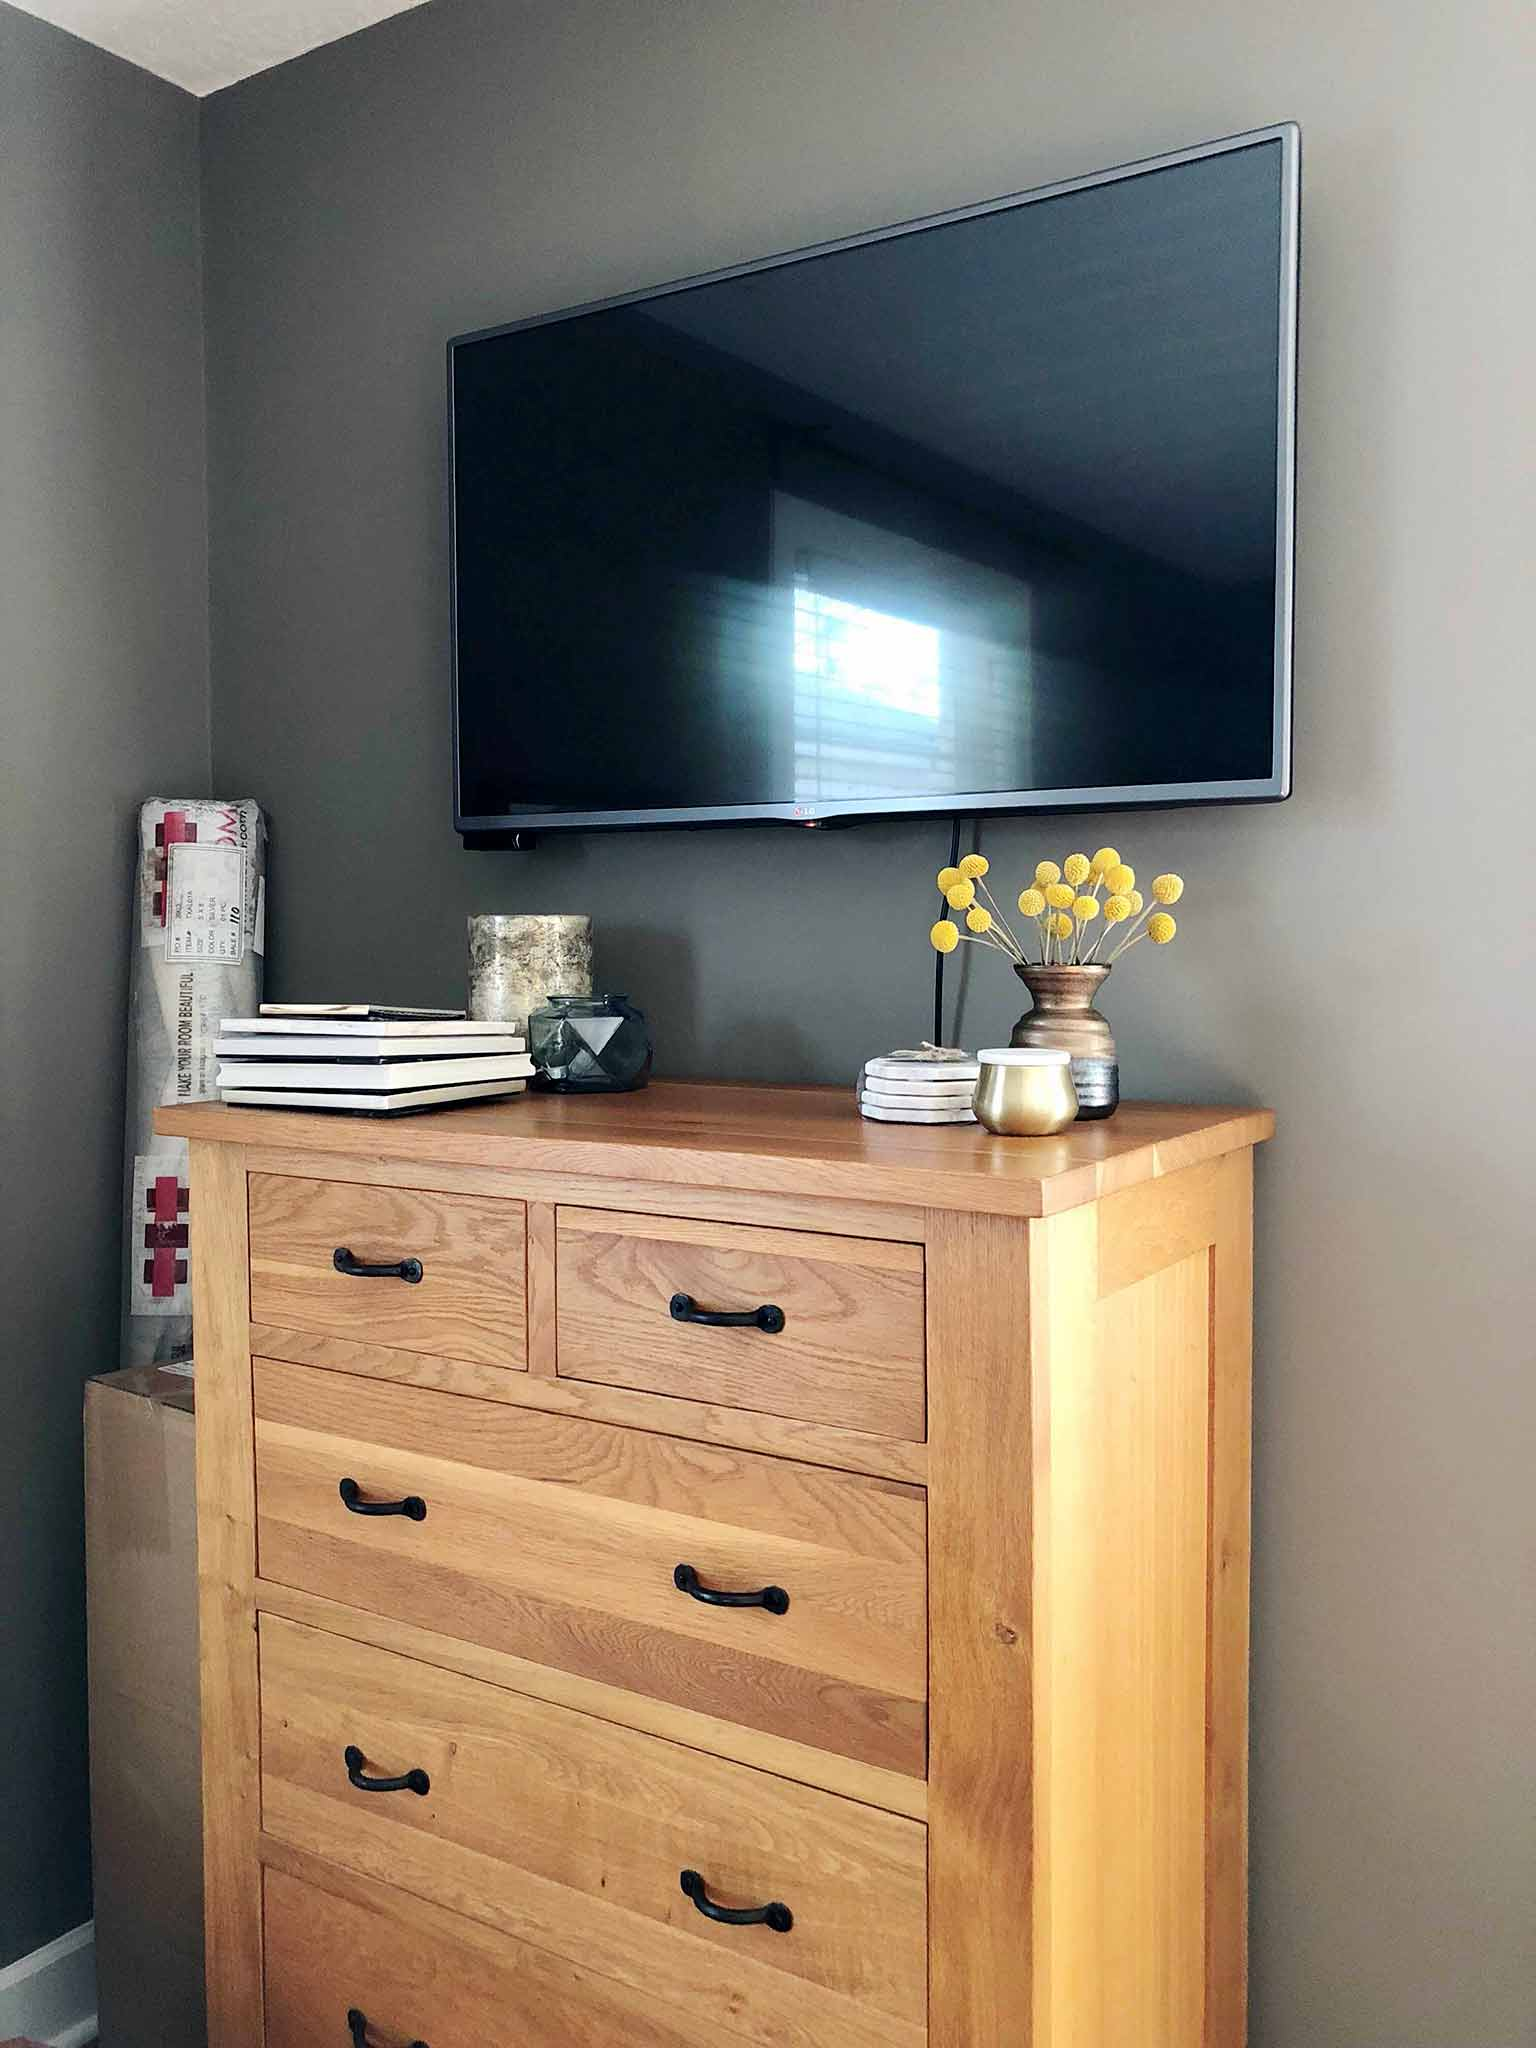 Master Bedroom Progress Mounted TV - The One Room Challenge - That Homebird Life Blog